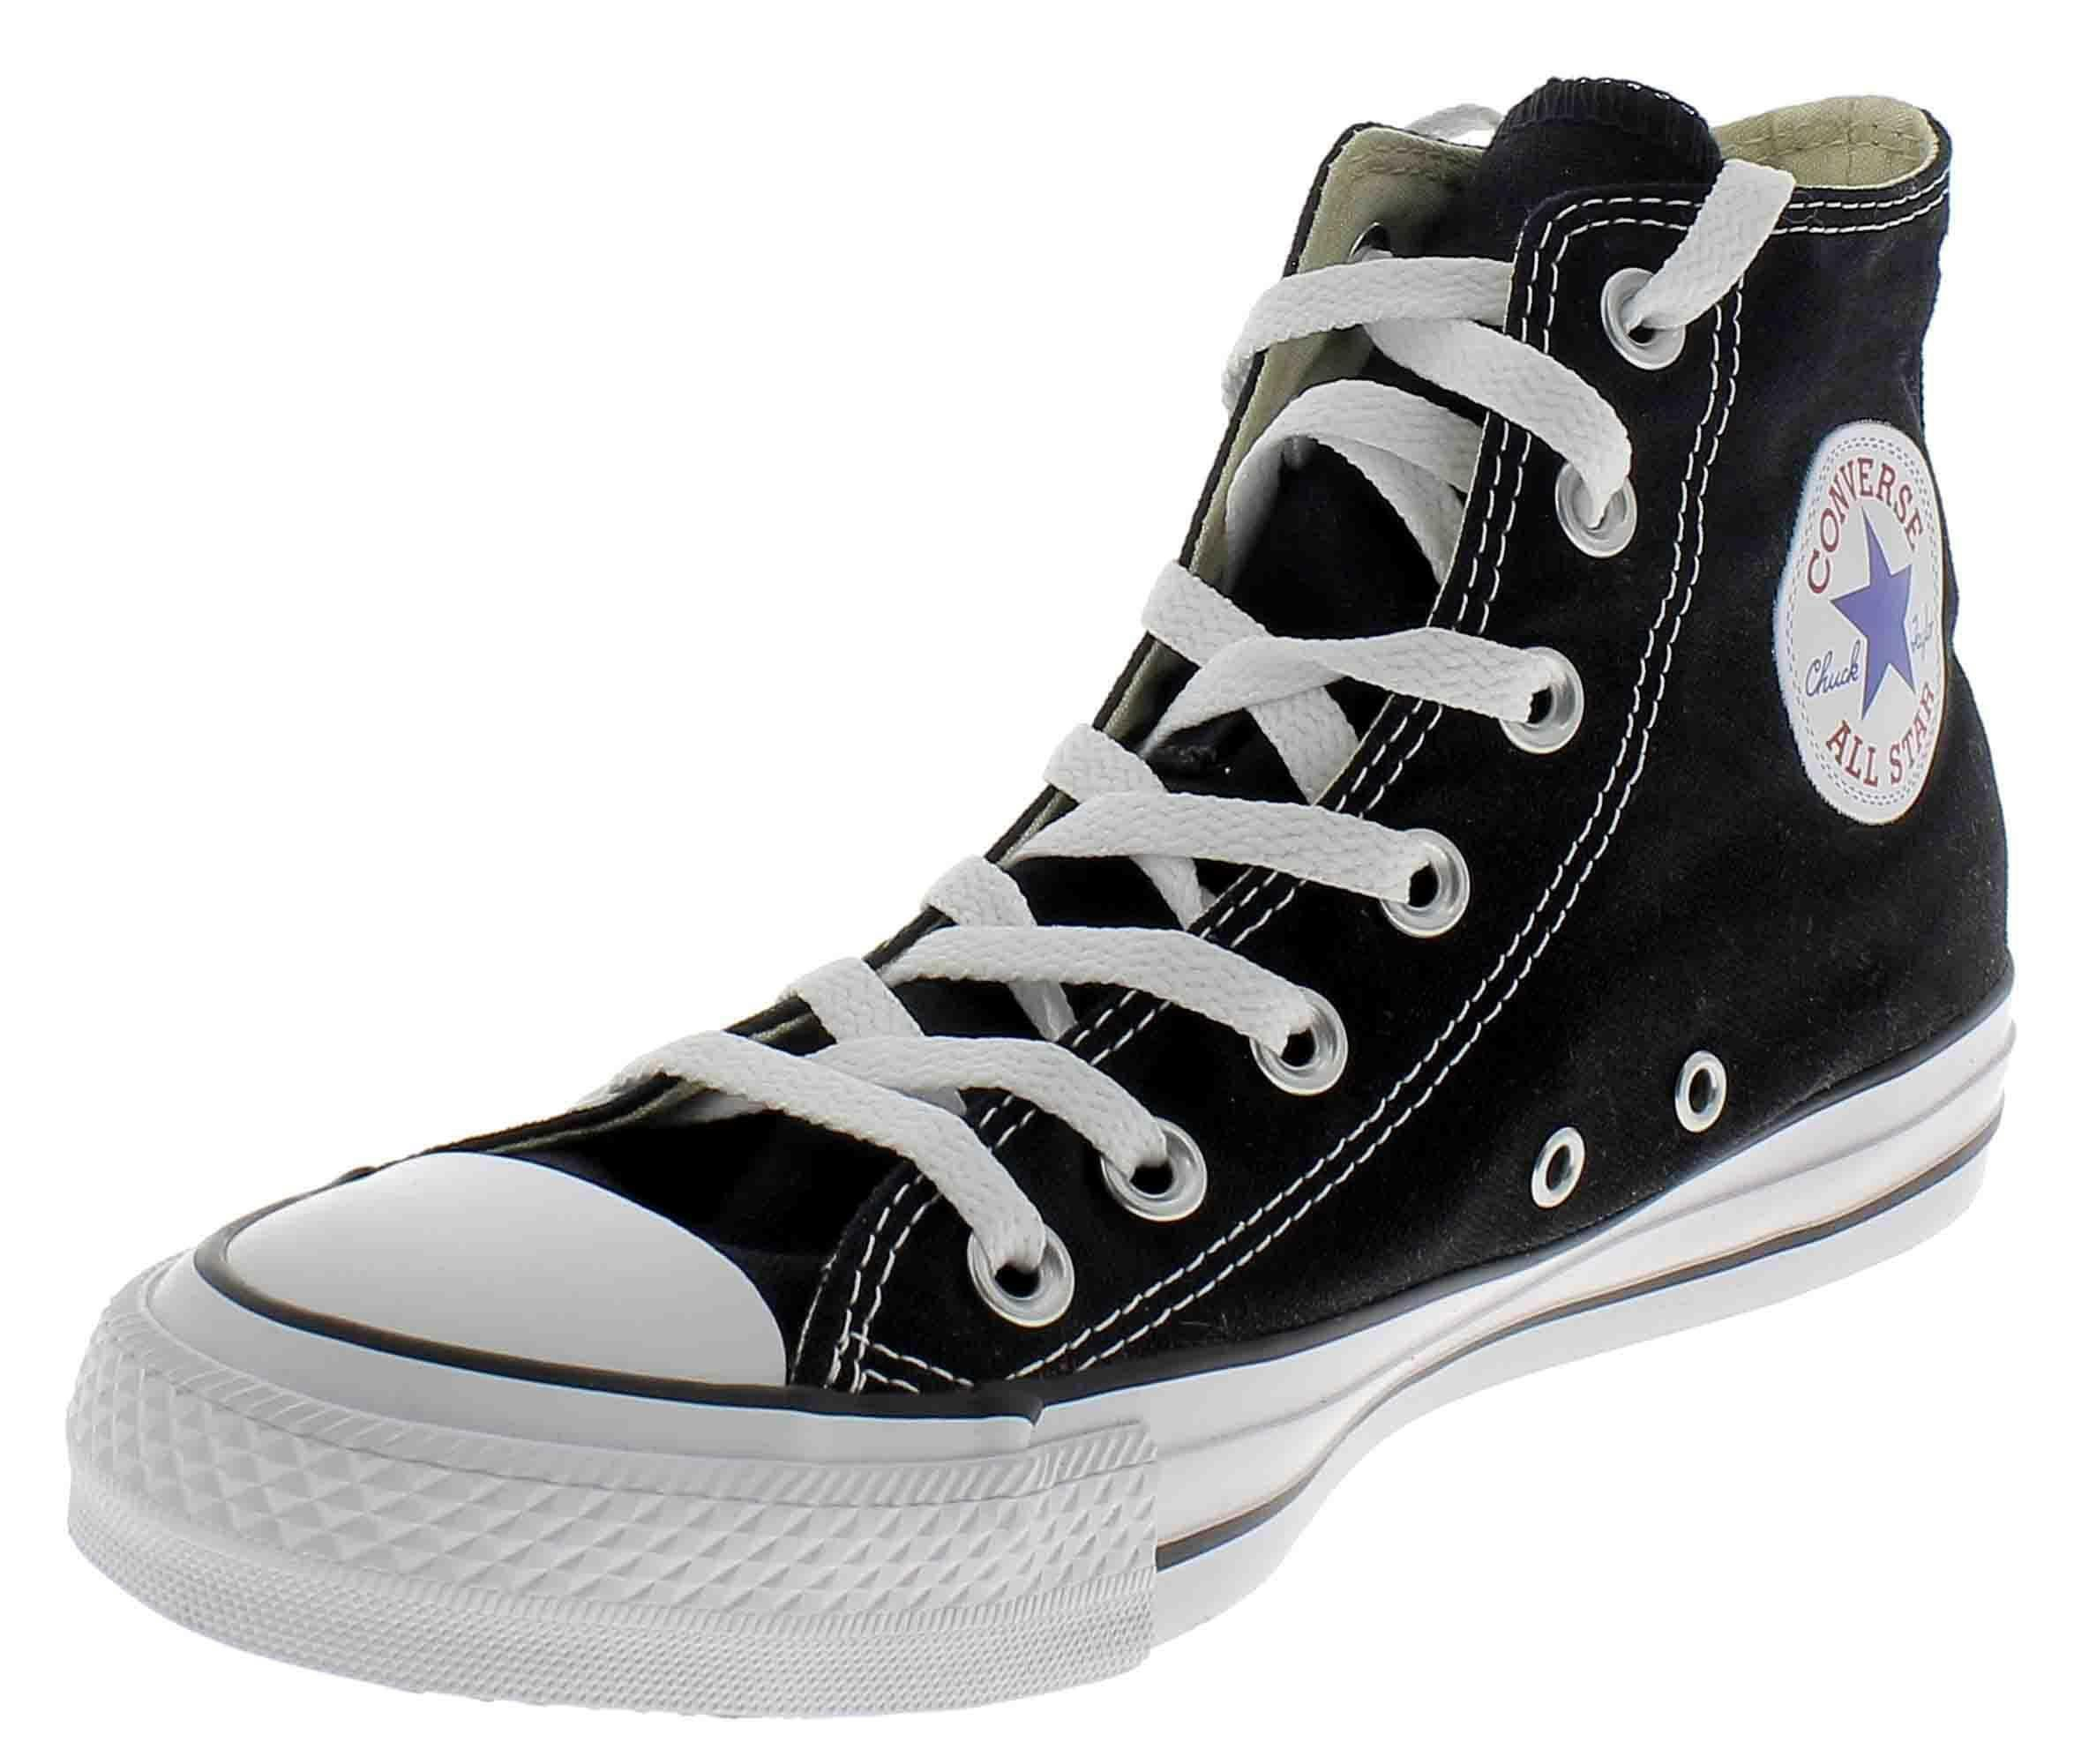 converse all star alte 36.5